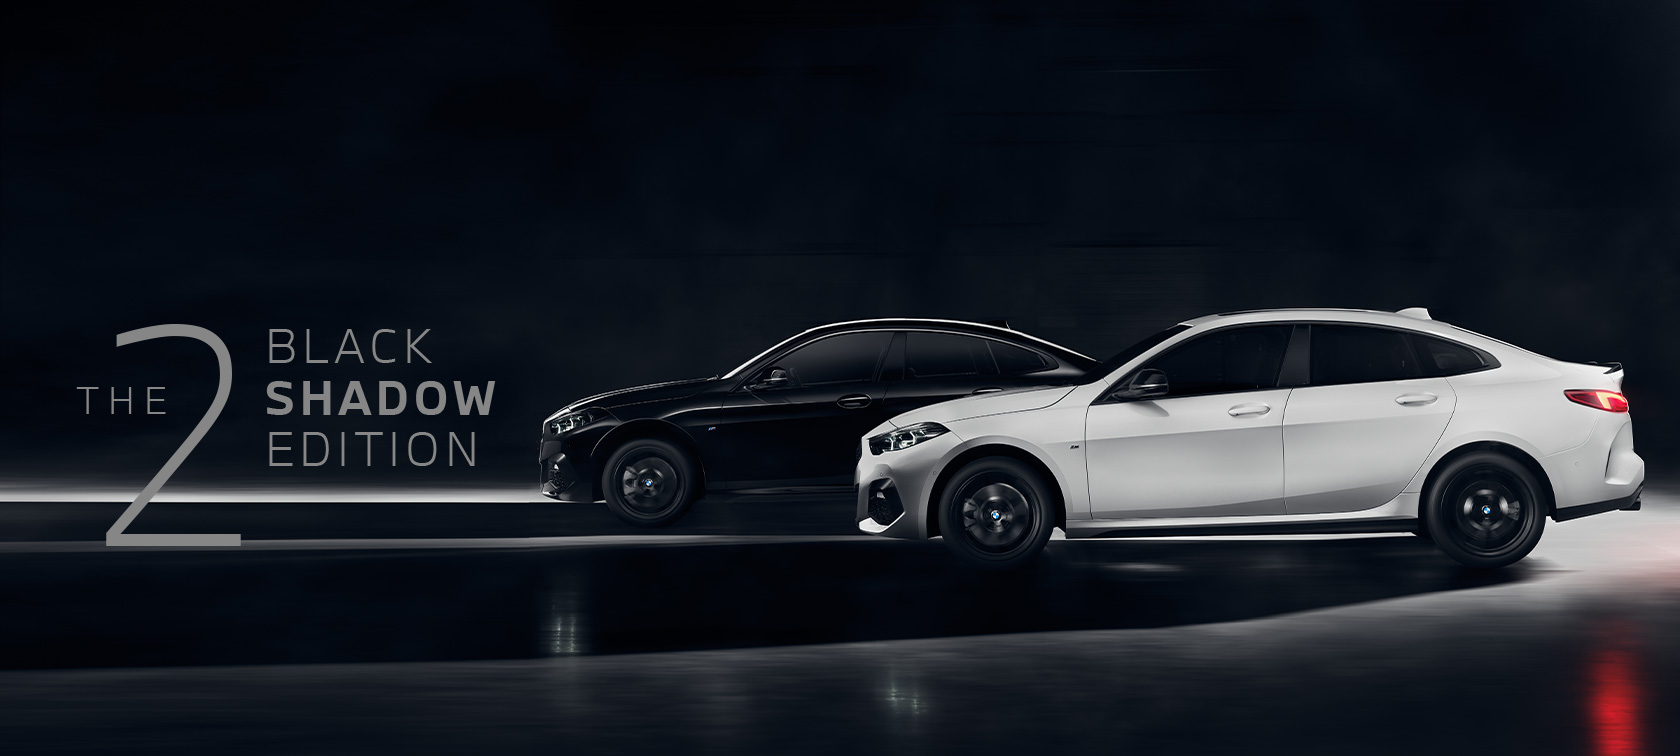 BMW 2 SERIES Black Shadow Edition